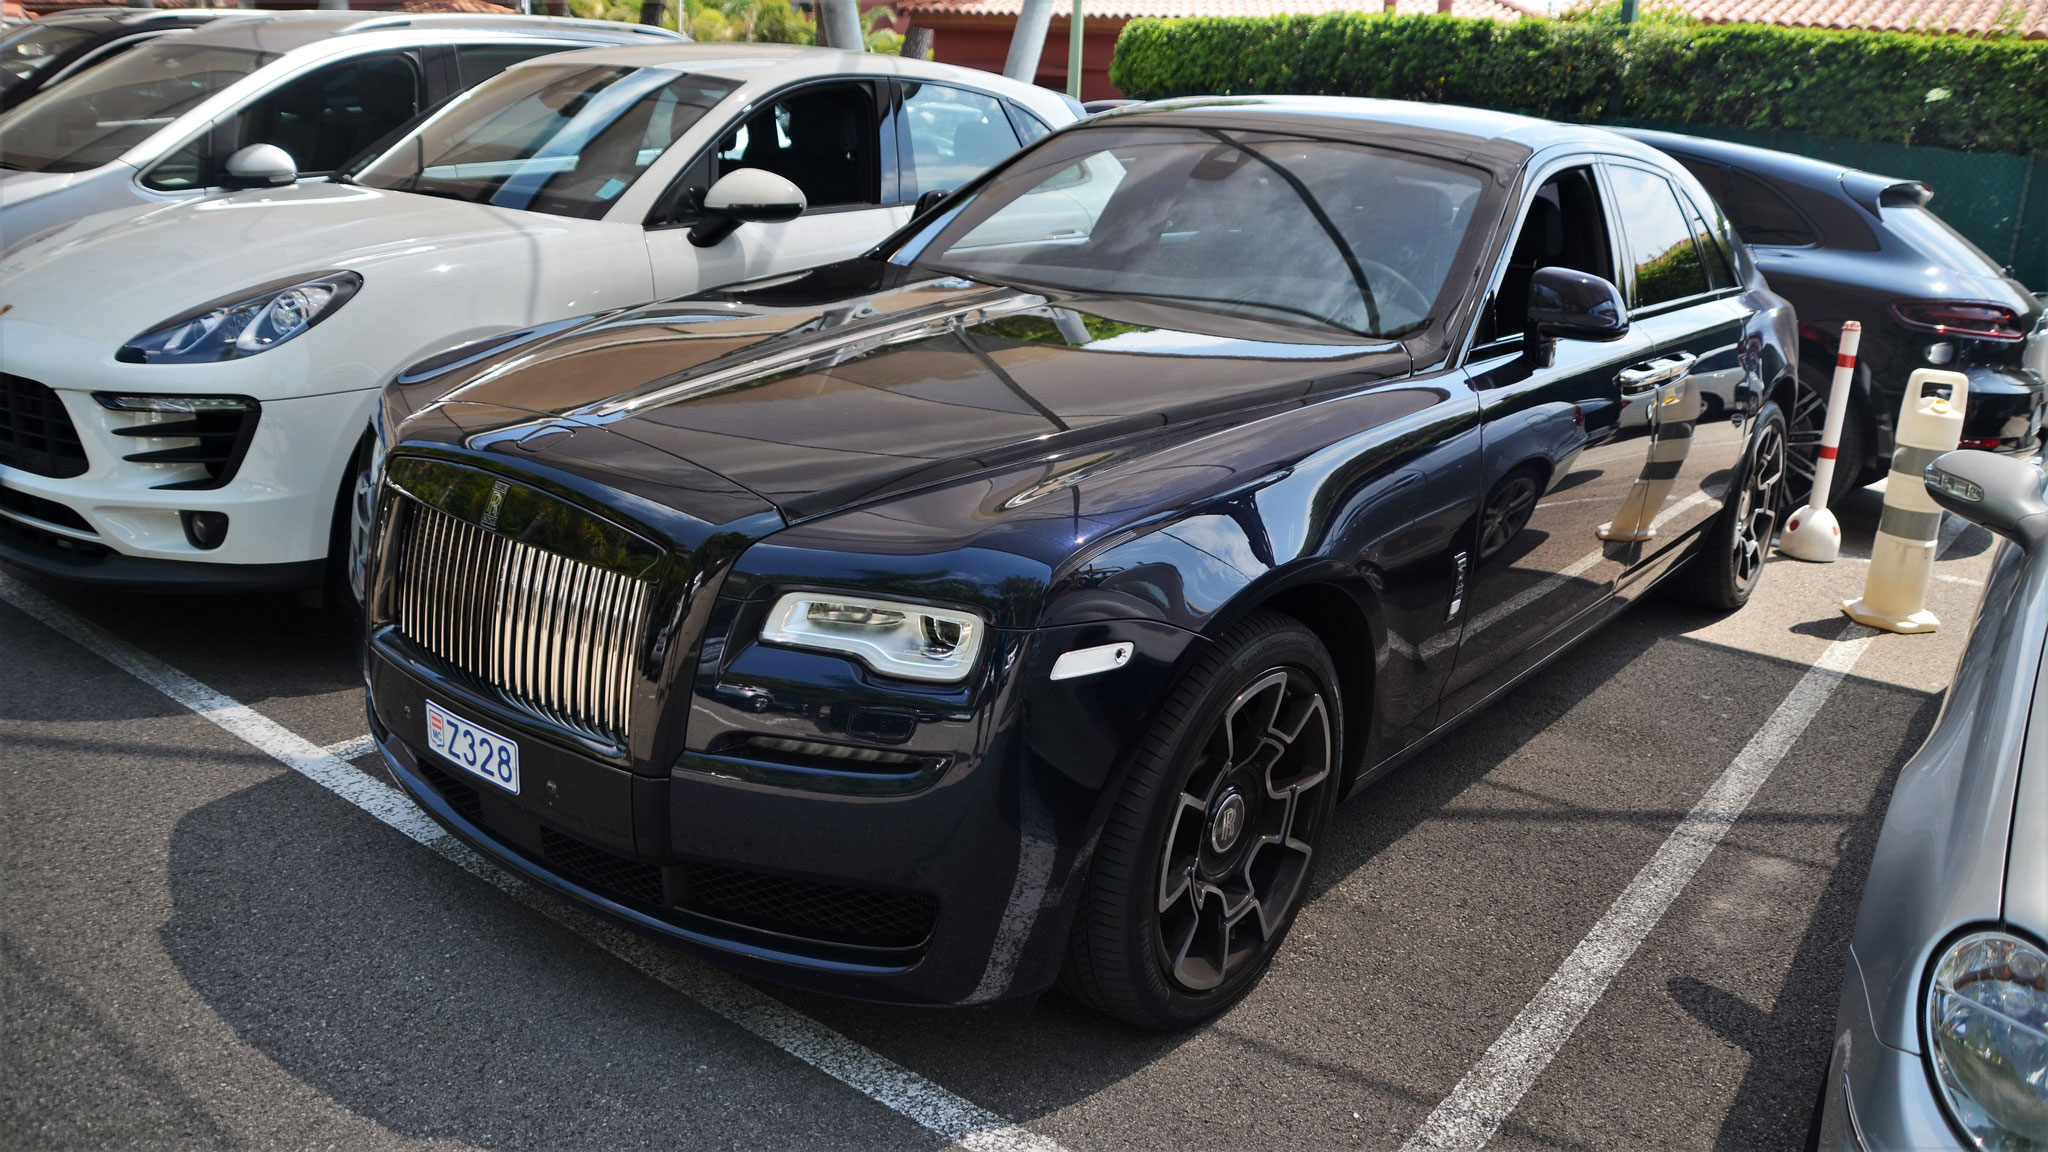 Rolls Royce Ghost Series II - Z328 (MC)